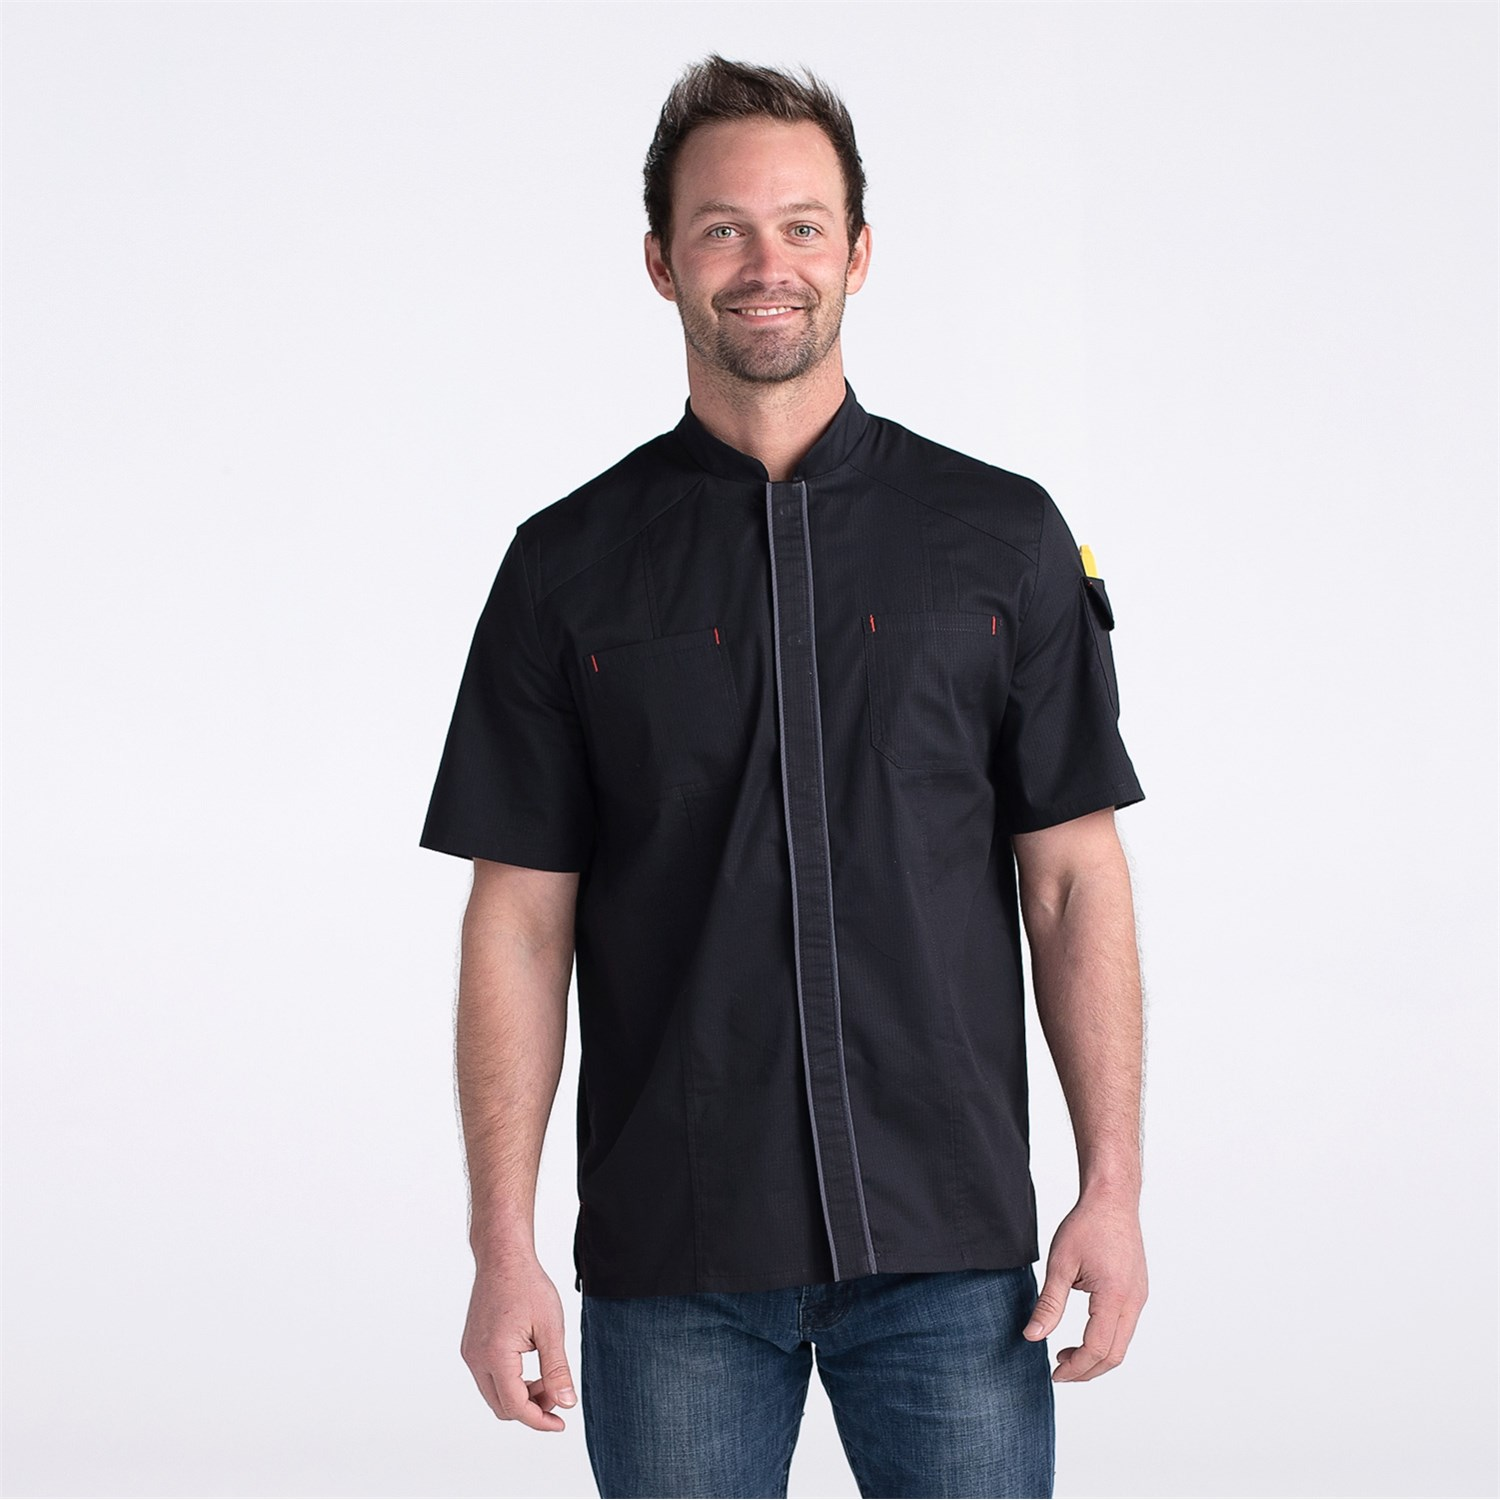 Unisex Flex Kitchen Shirt (CW4321) - Color Black - Men